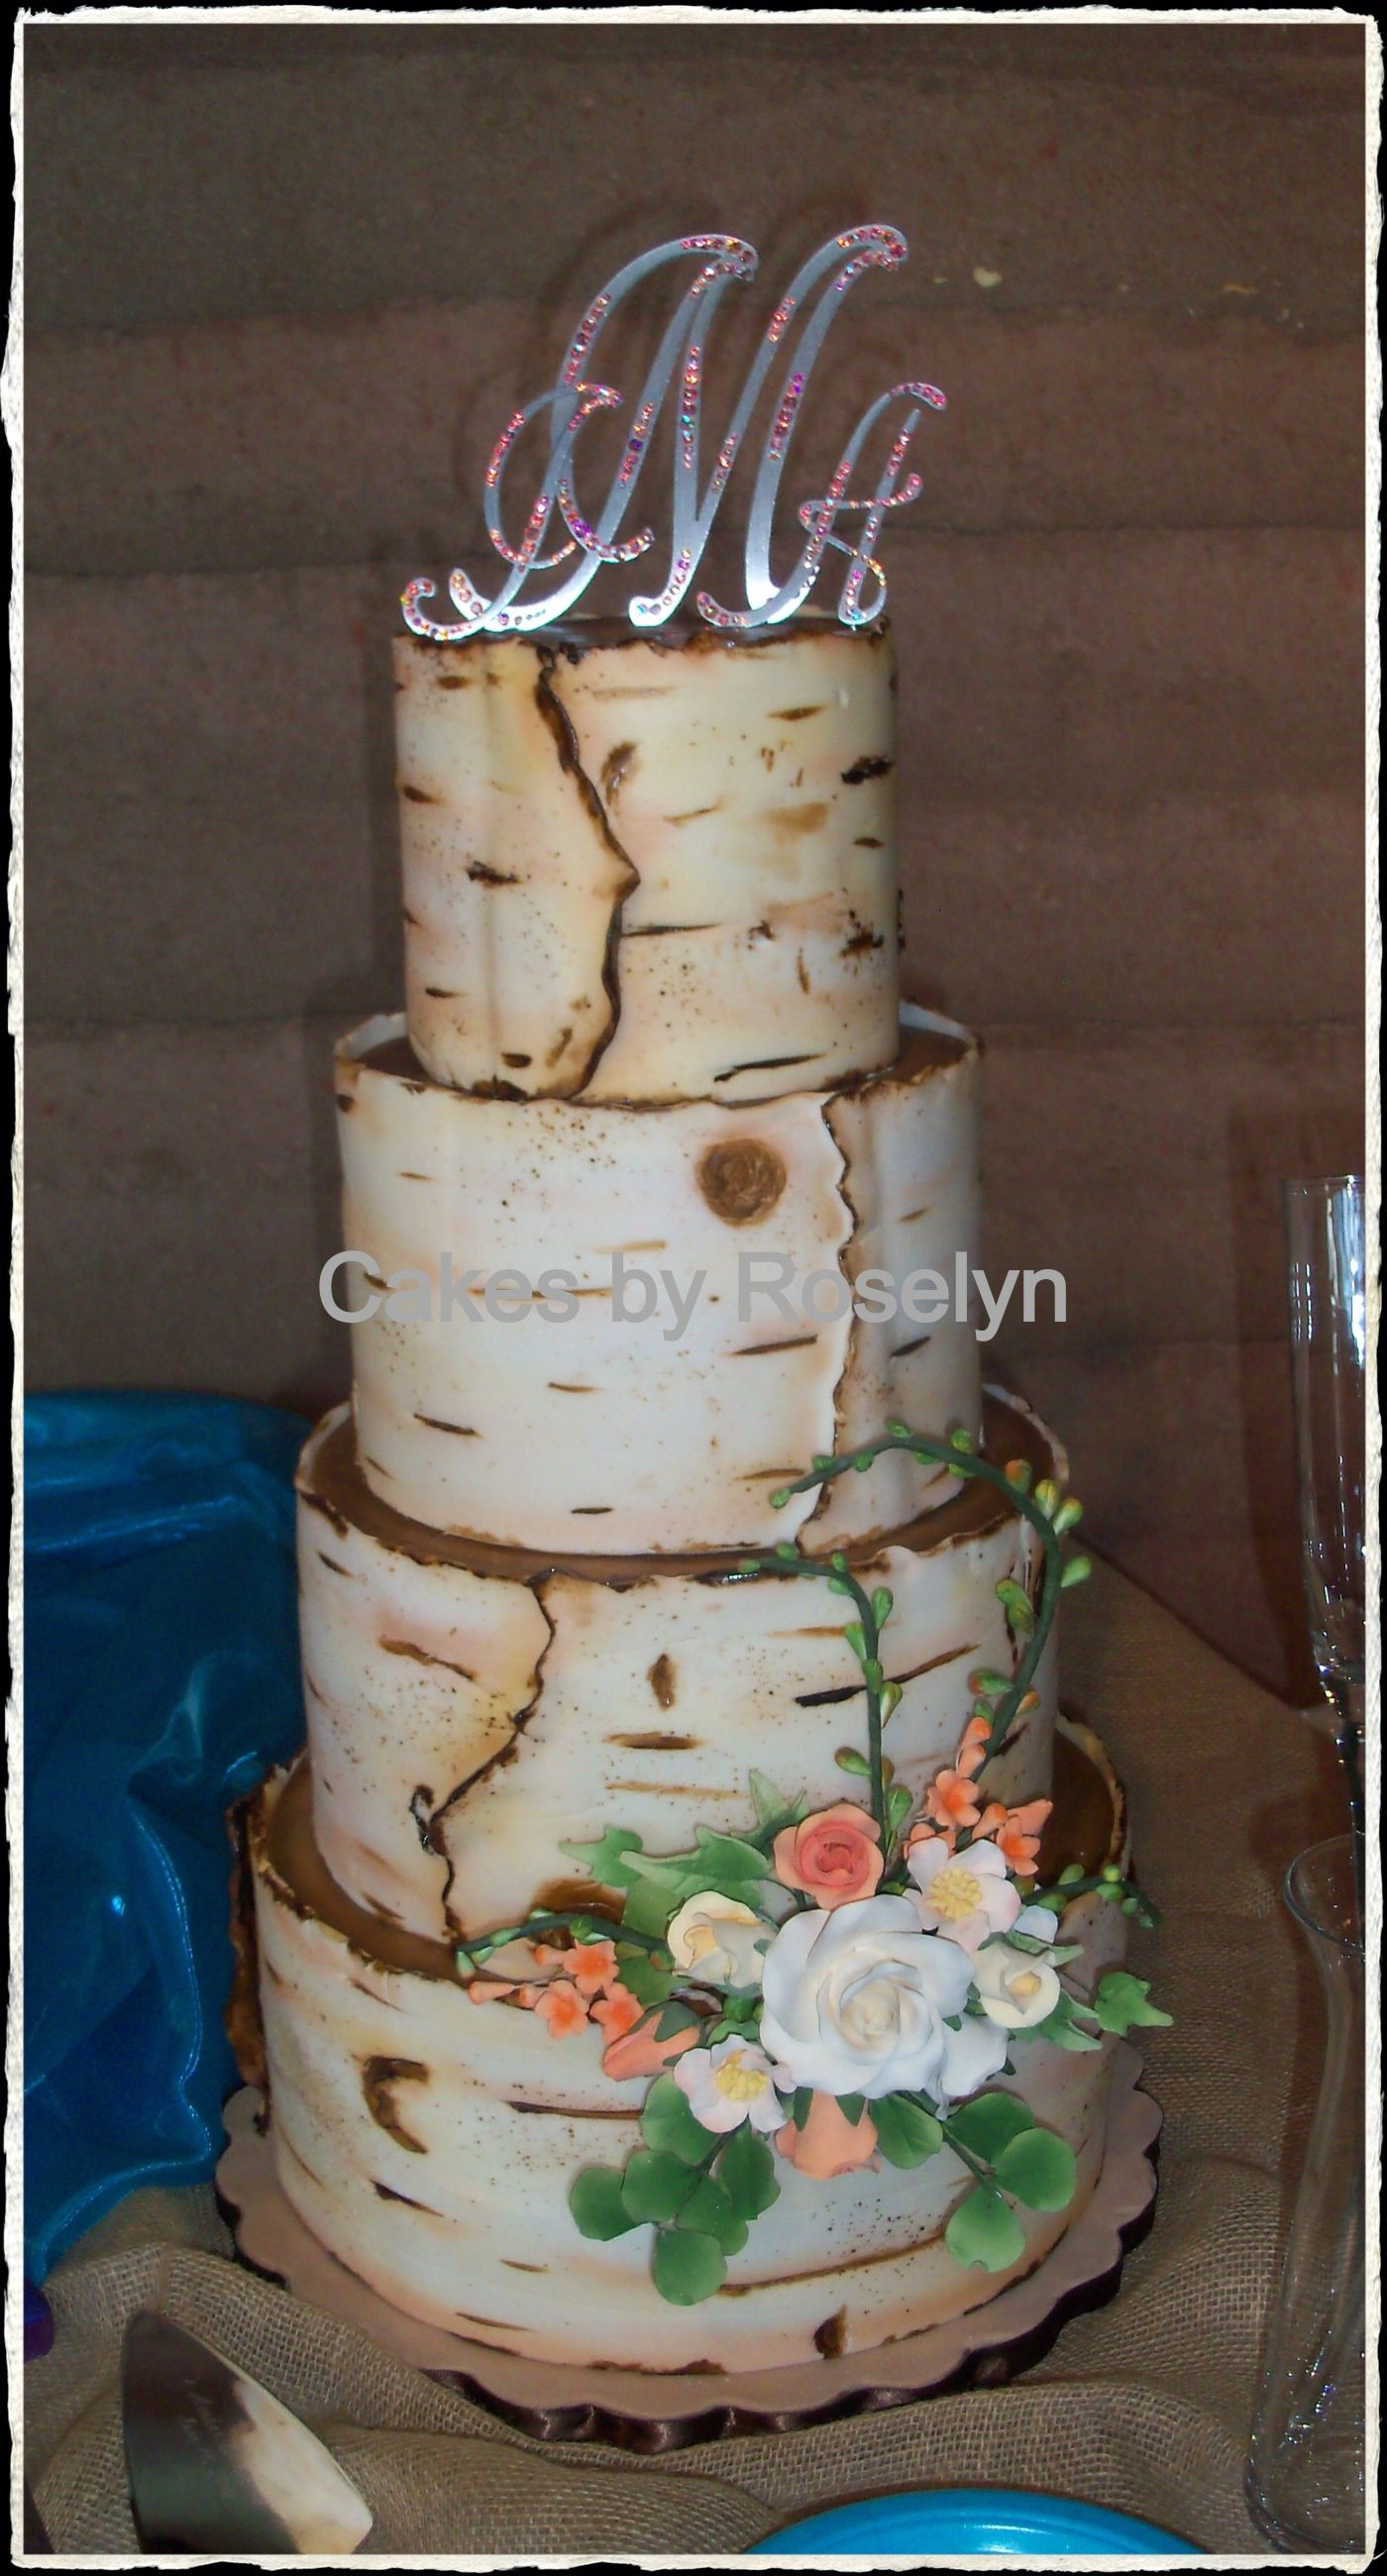 birch tree wedding cake with gumpaste flowers my cakes pinterest tree wedding cakes. Black Bedroom Furniture Sets. Home Design Ideas